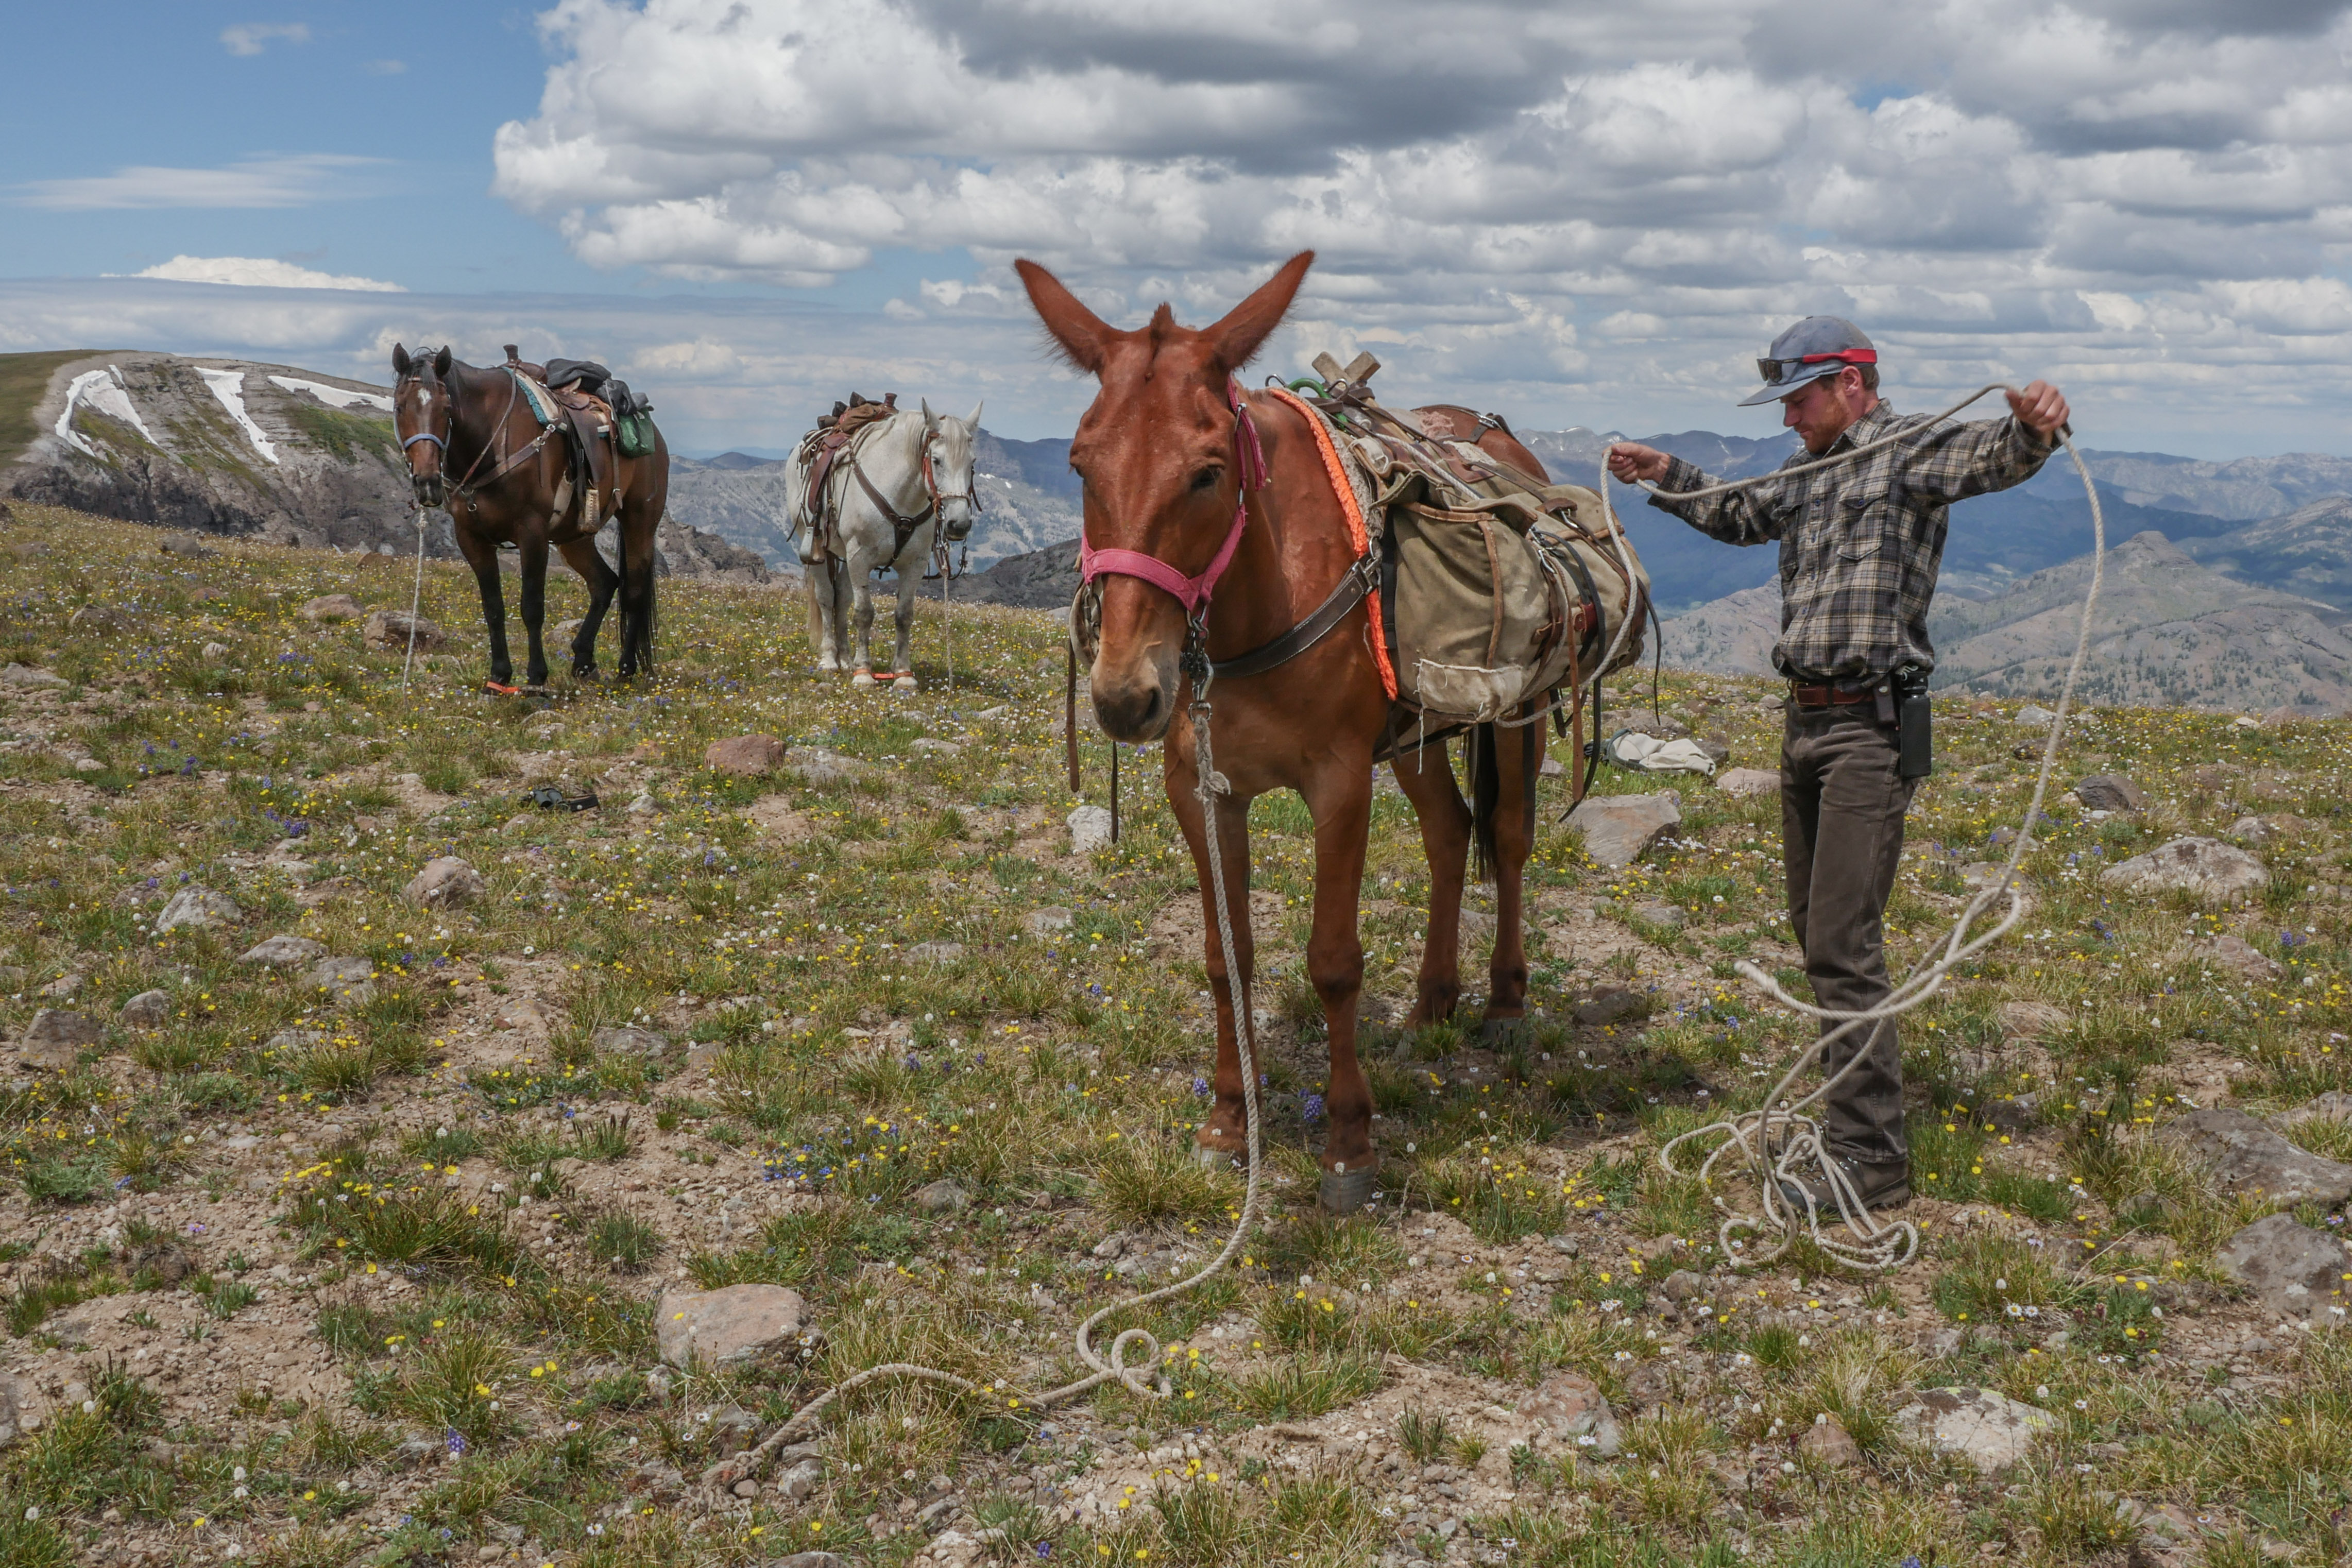 Photographer Joe Riis untangling rope carried by one of his pack mules.